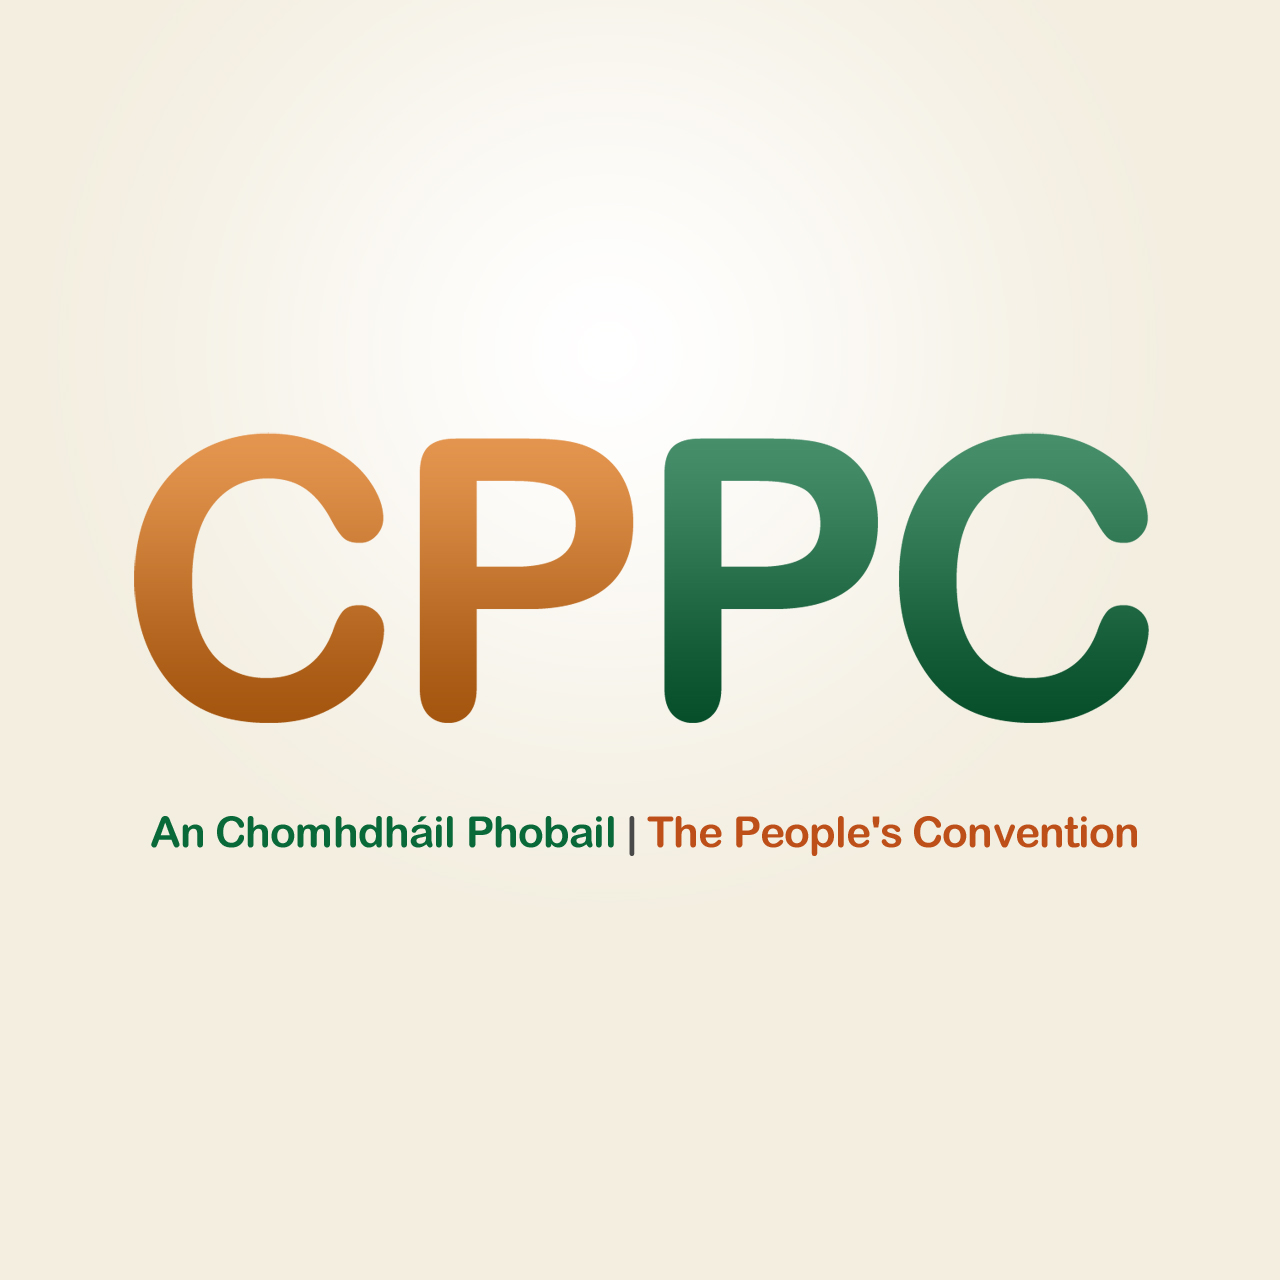 An Chomhdháil Phobail | The People's Convention